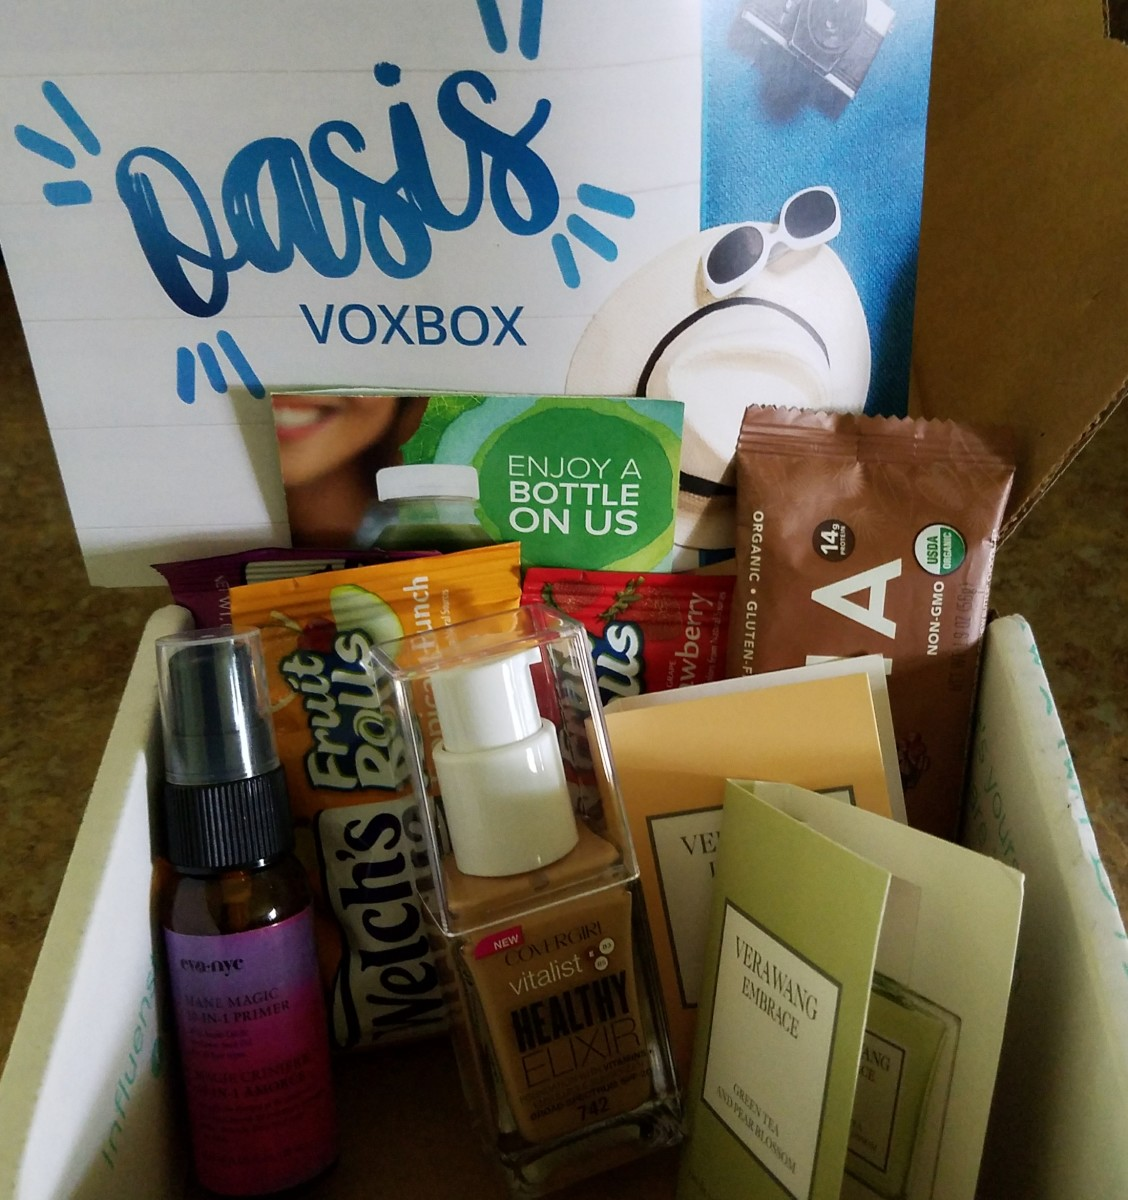 The Oasis Voxbox Campaign. I was invited to test out these complimentary products.